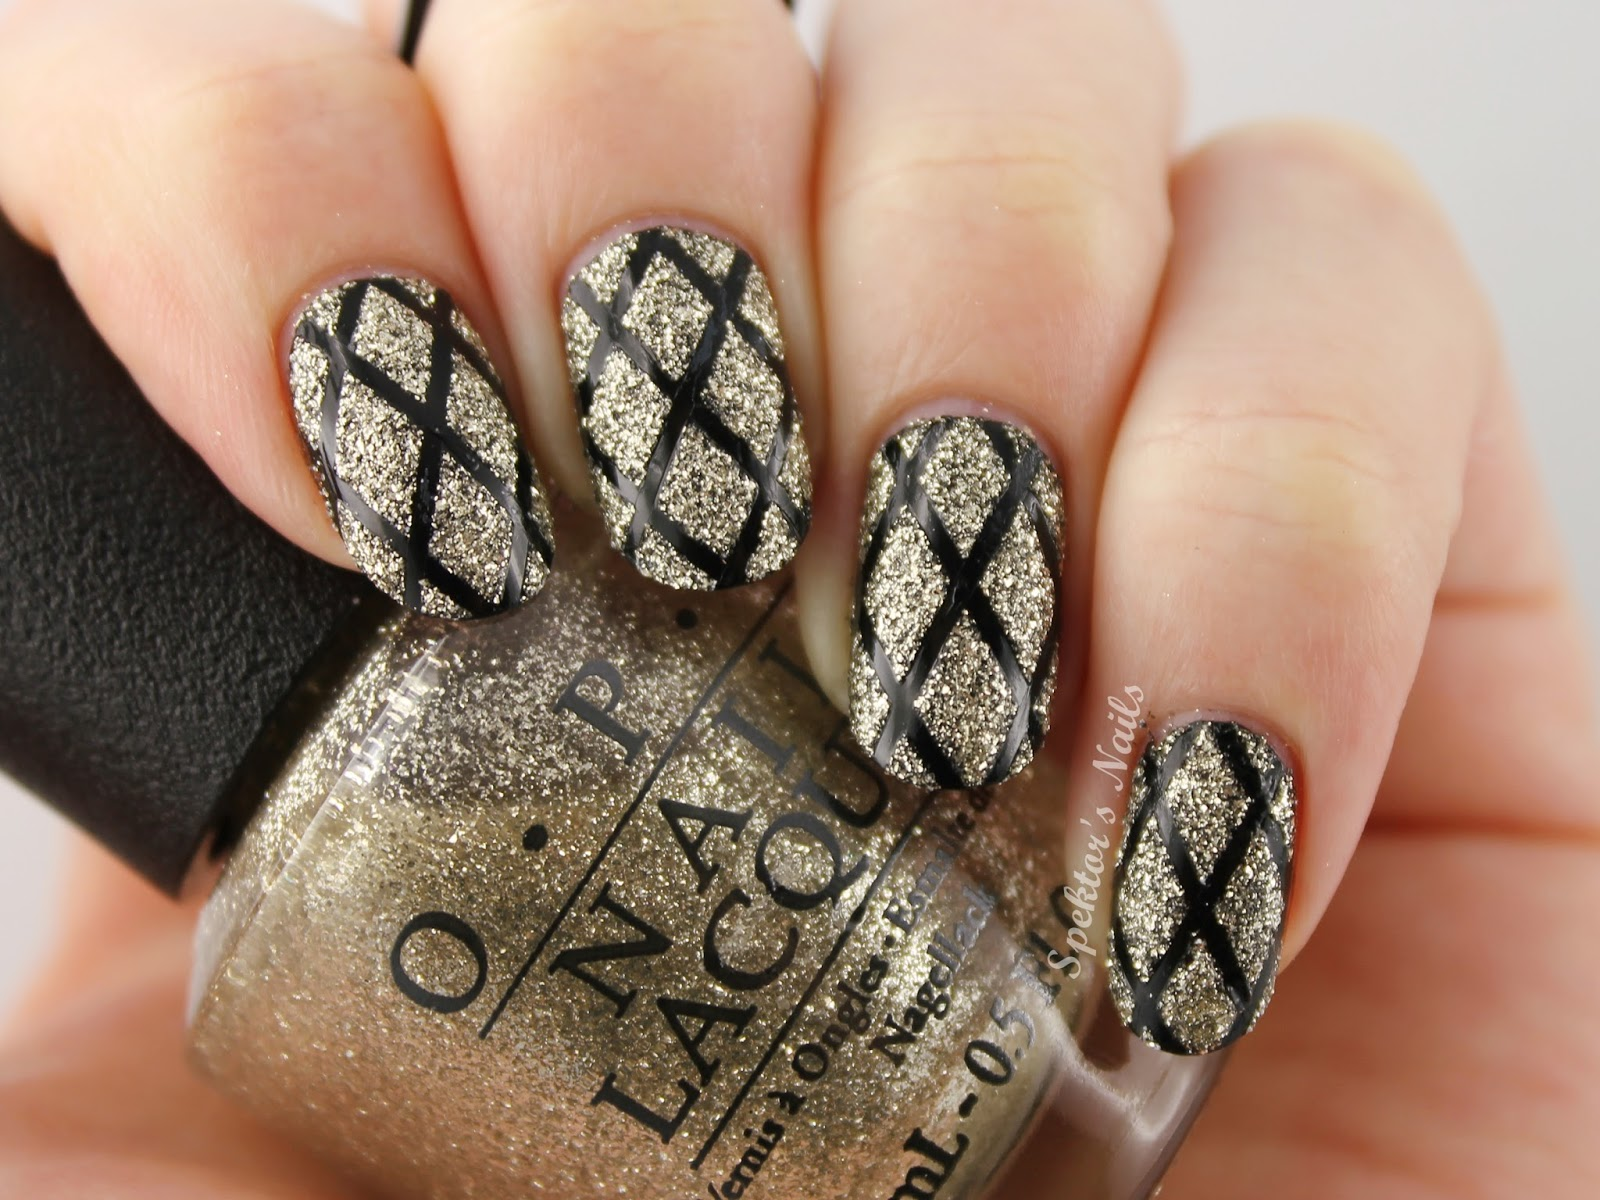 The Lacquer Legion Glam: OPI - My Favorite Ornament